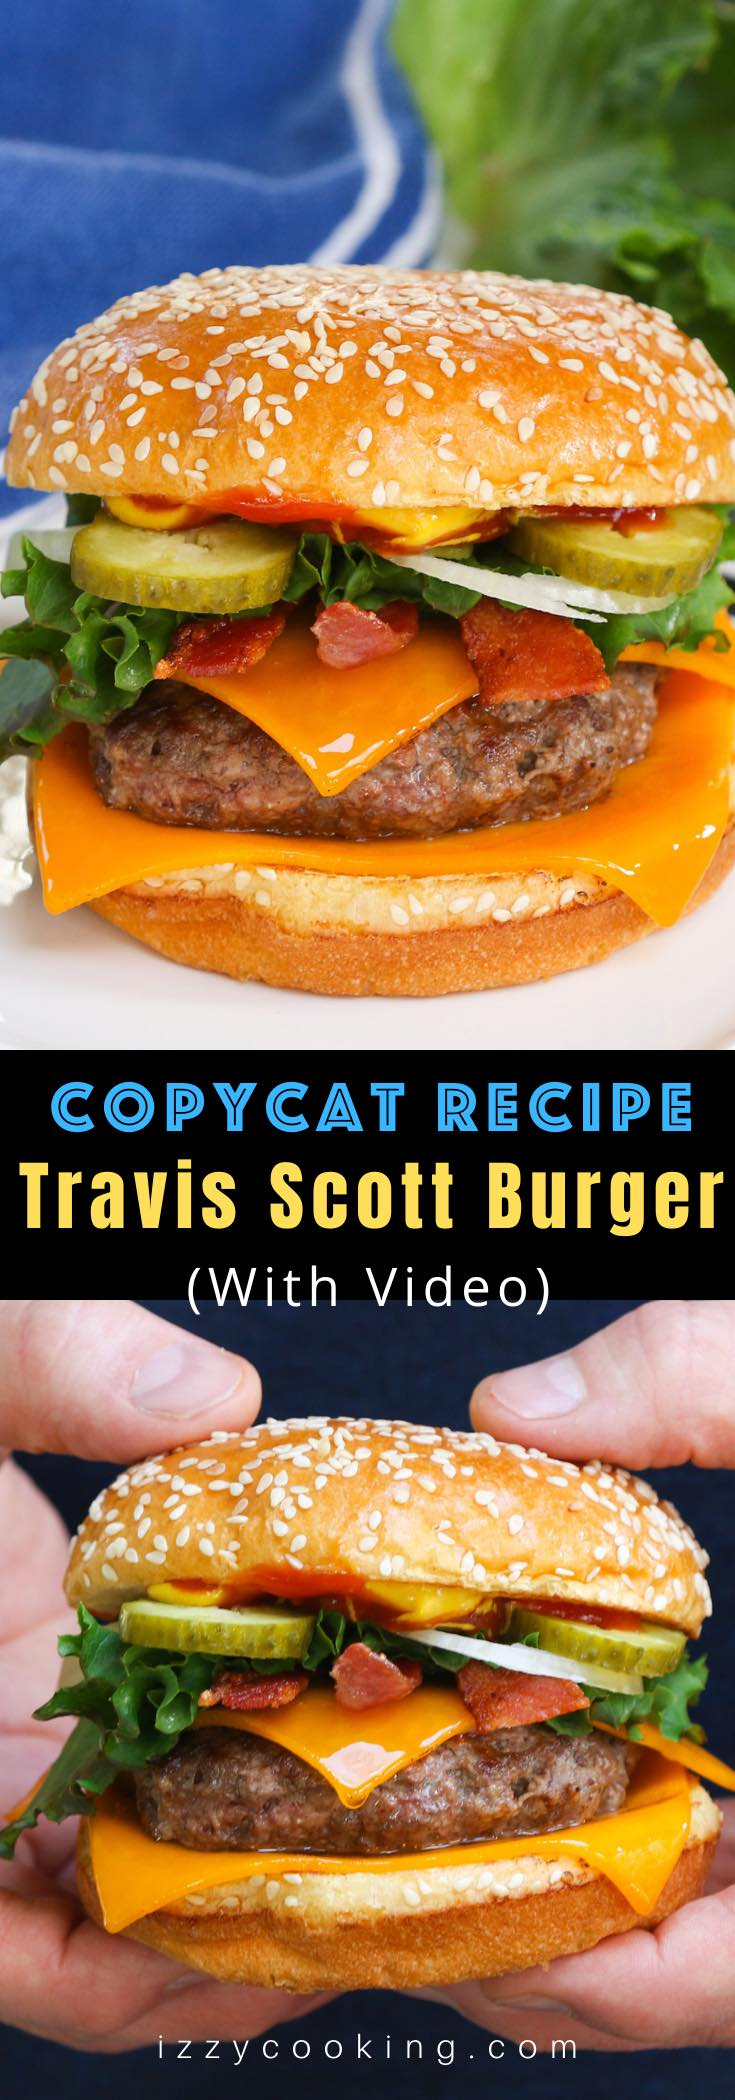 This Travis Scott Burger copycat recipe captures the exact McDonald's flavors for you at home with a Quarter Pounder, cheese, bacon, lettuce, and sesame seeds hamburger buns! Serve it with French fries with barbecue sauce and a large Sprite for a true rapper Travis Scott X McDonald's cheeseburger experience!